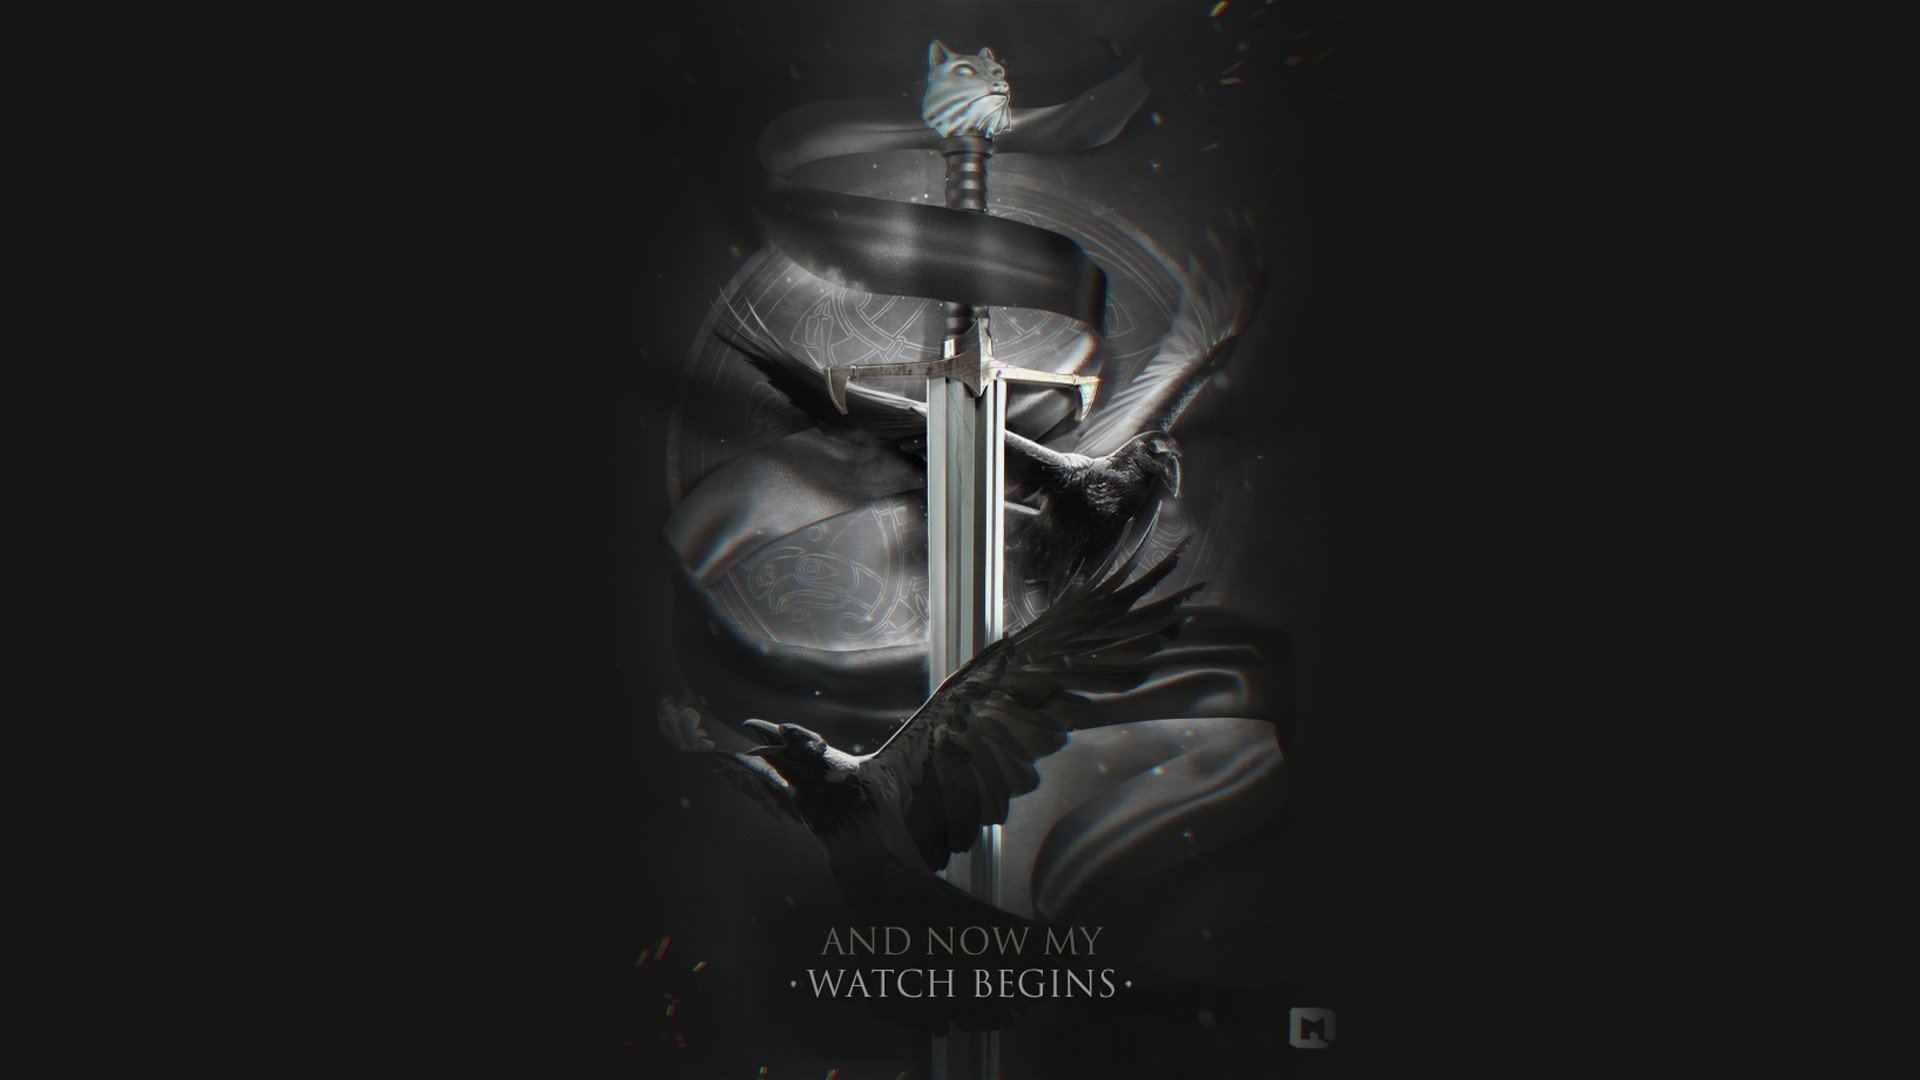 3d Windows Phone Wallpaper Download 1920x1080 Game Of Thrones And Now My Watch